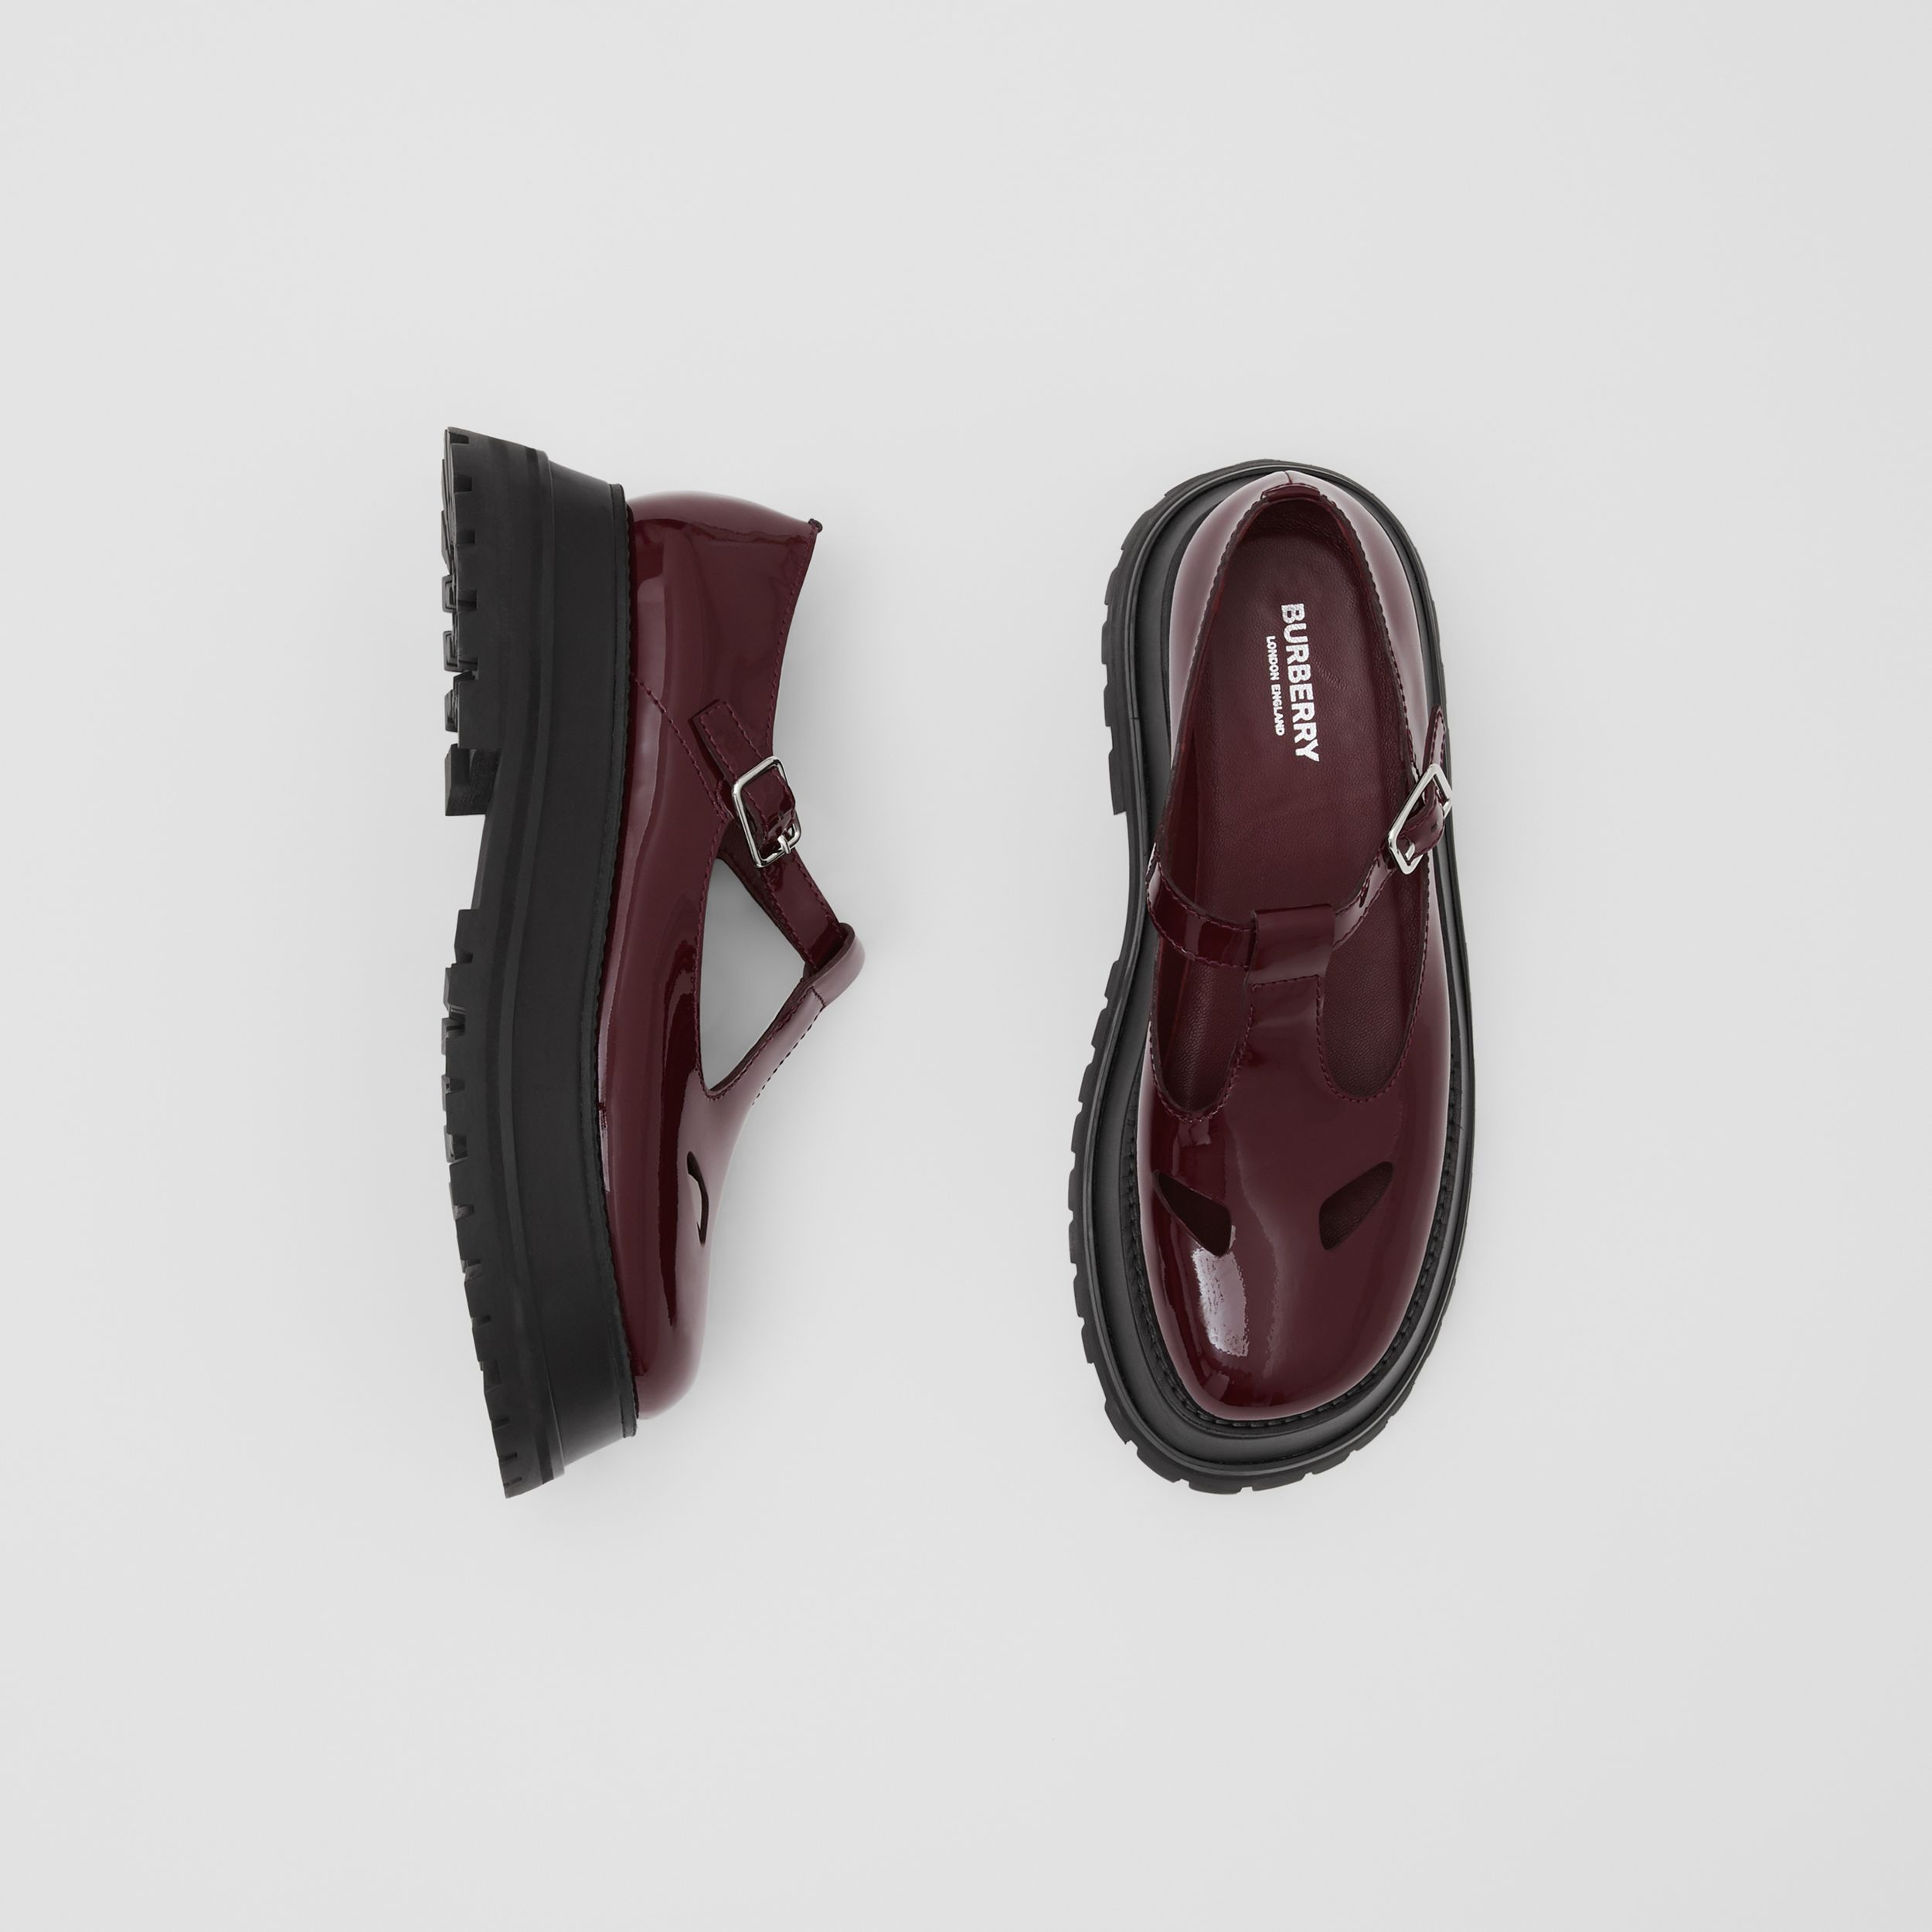 Patent Leather T-bar Shoes in Oxblood - Women | Burberry - 1